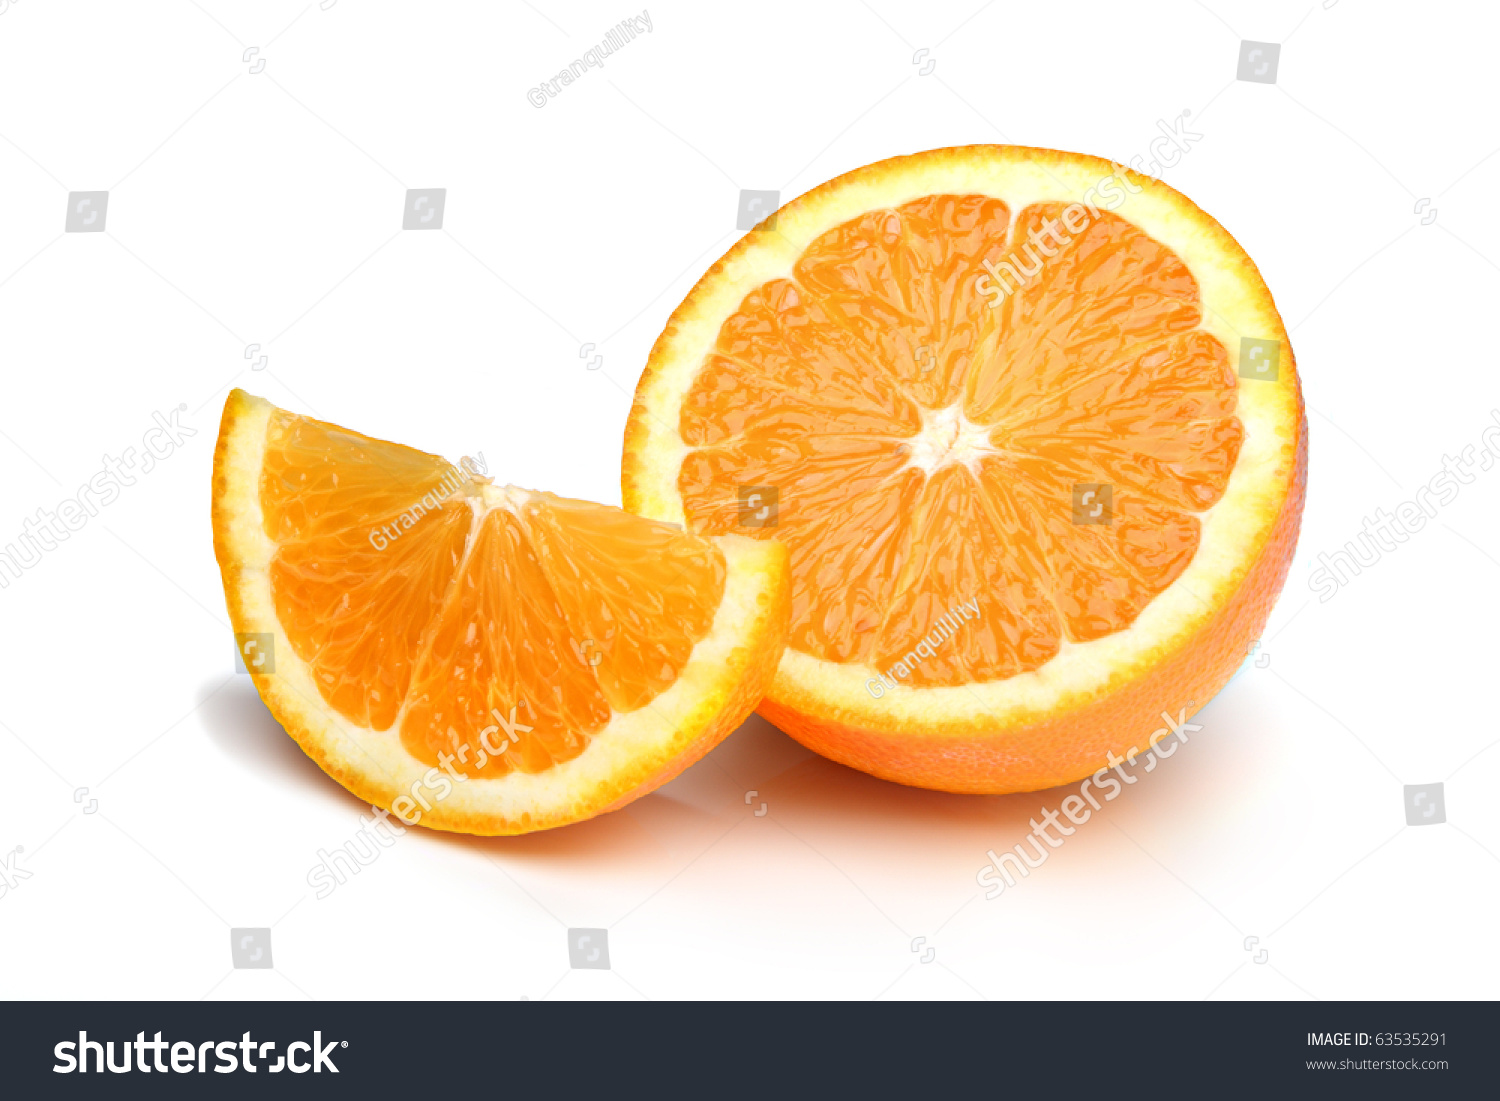 Half An Orange Plus Slice, Isolated On A White Background